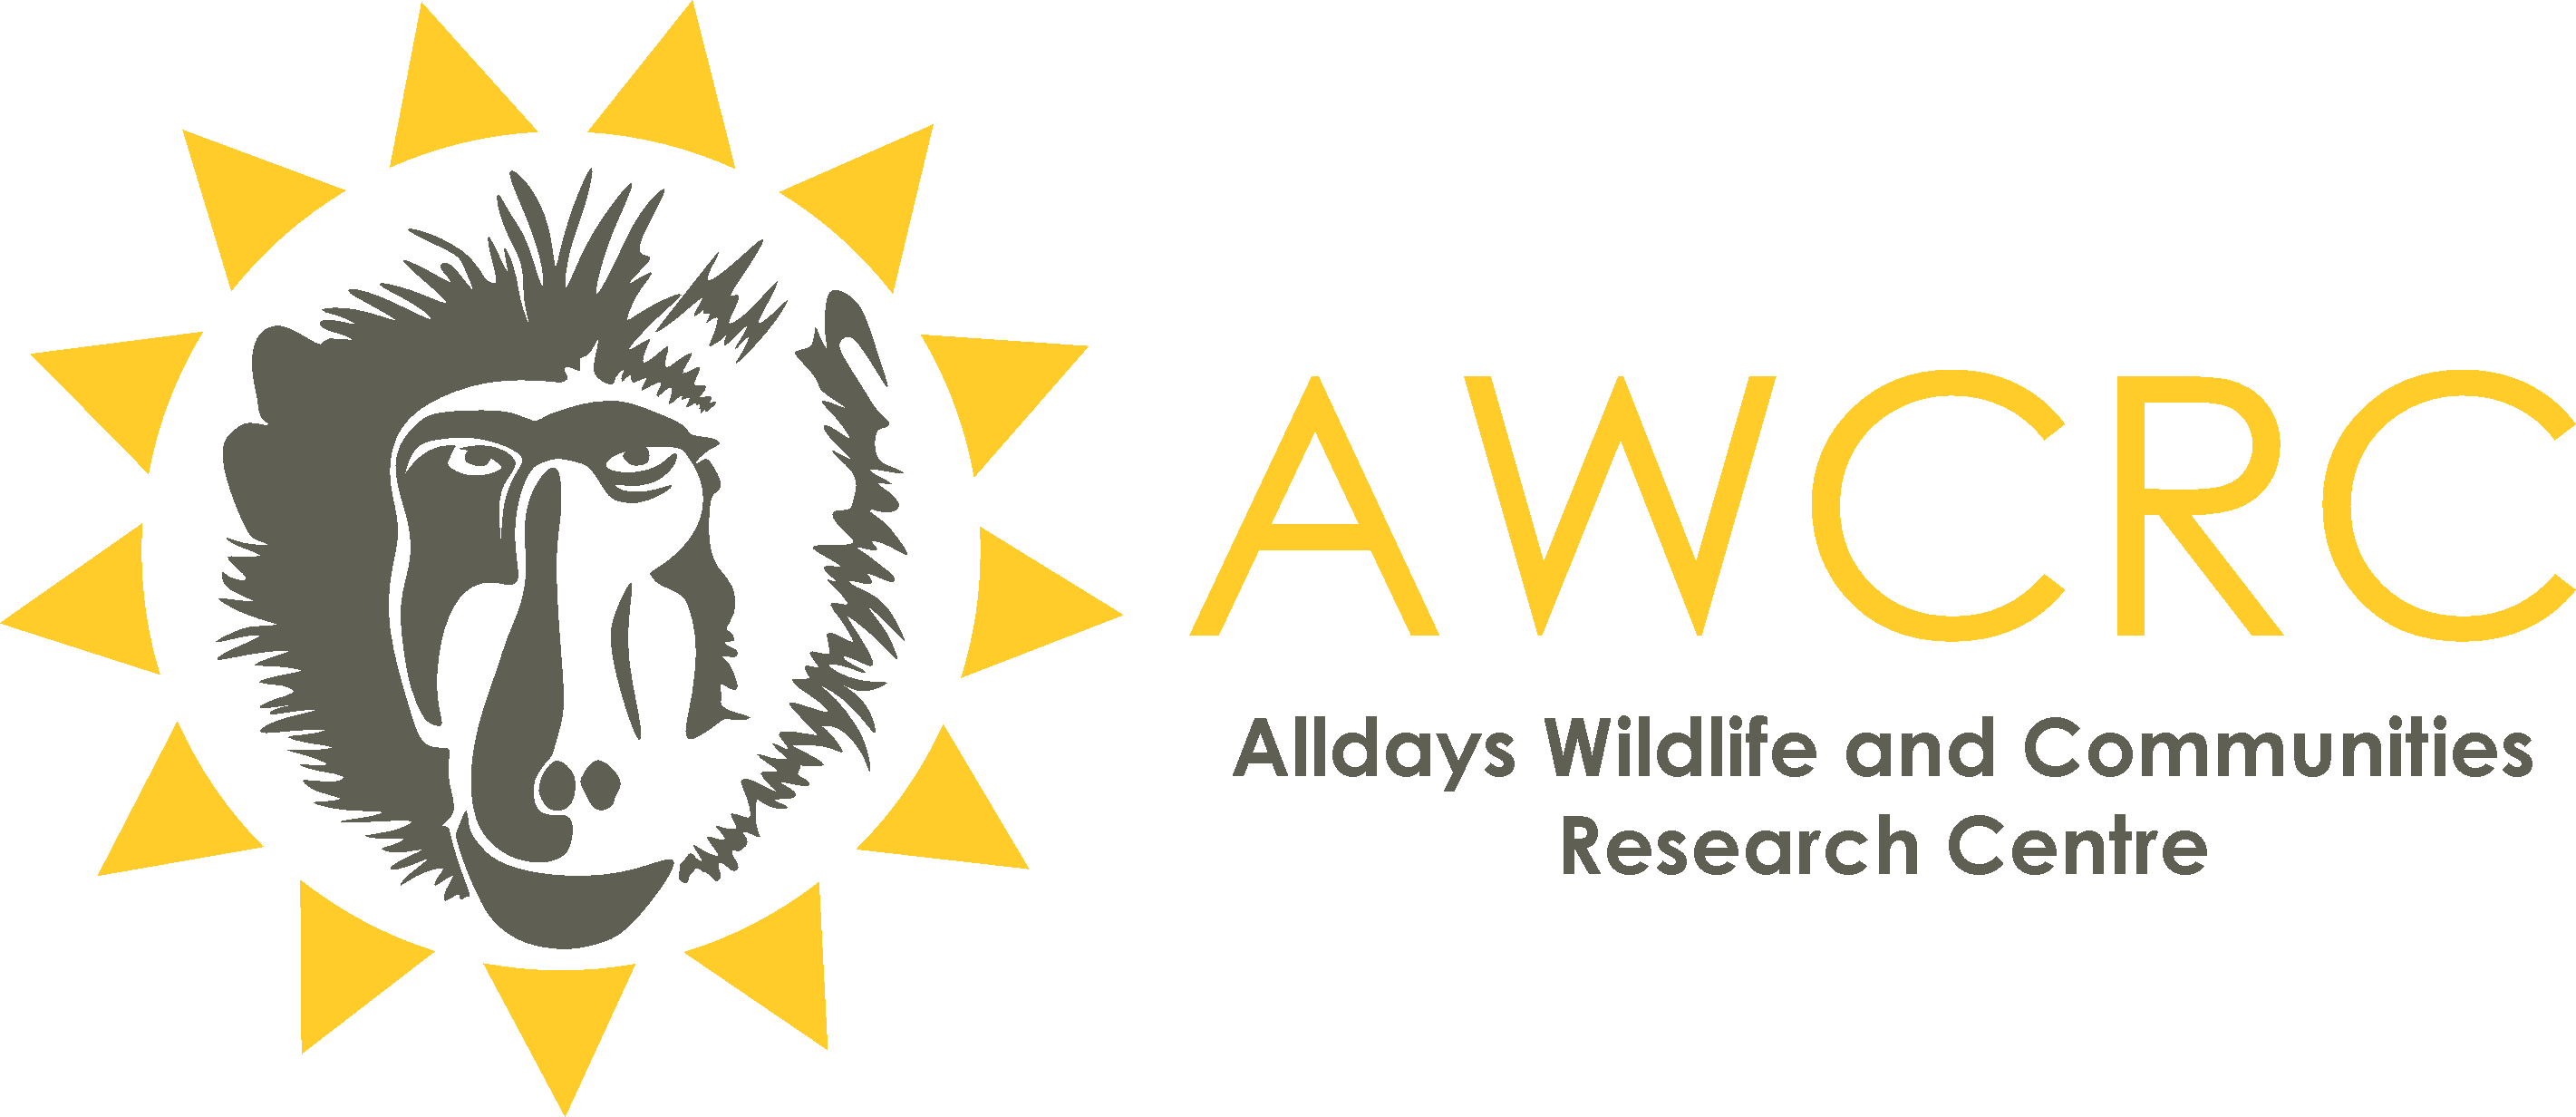 Alldays Wildlife and Communities Research Centre